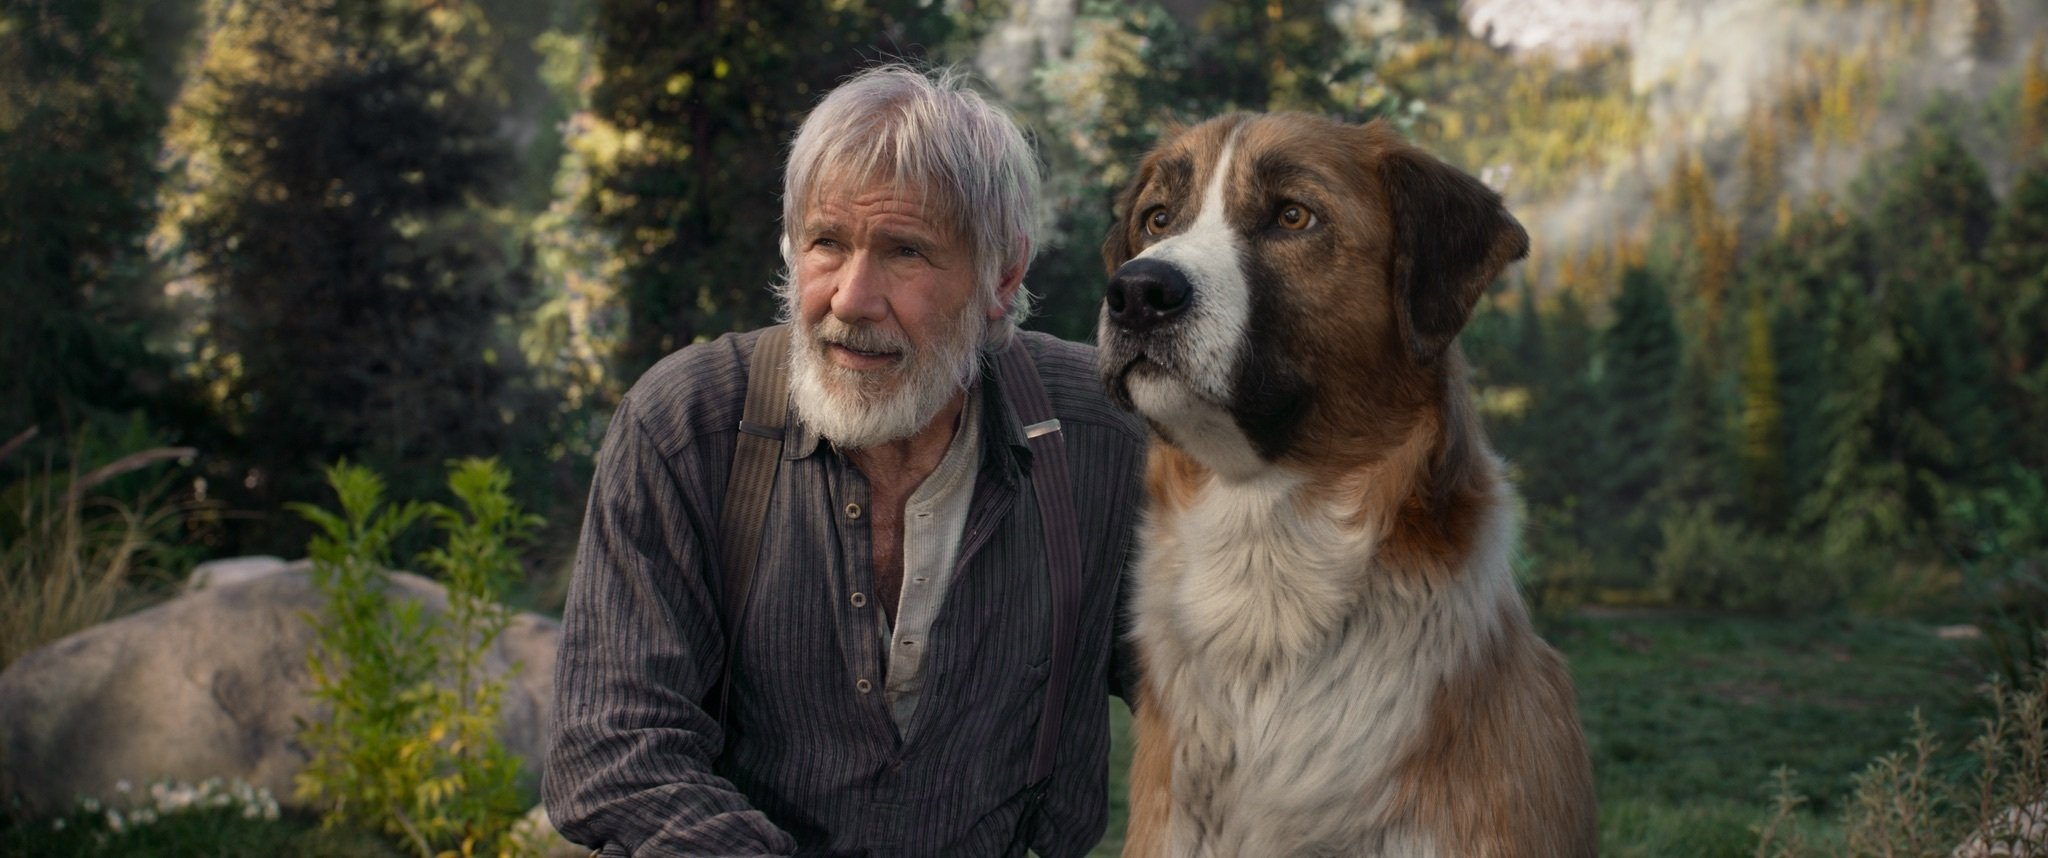 Review: A CGI canine yearns to be free in 'Call of the Wild'